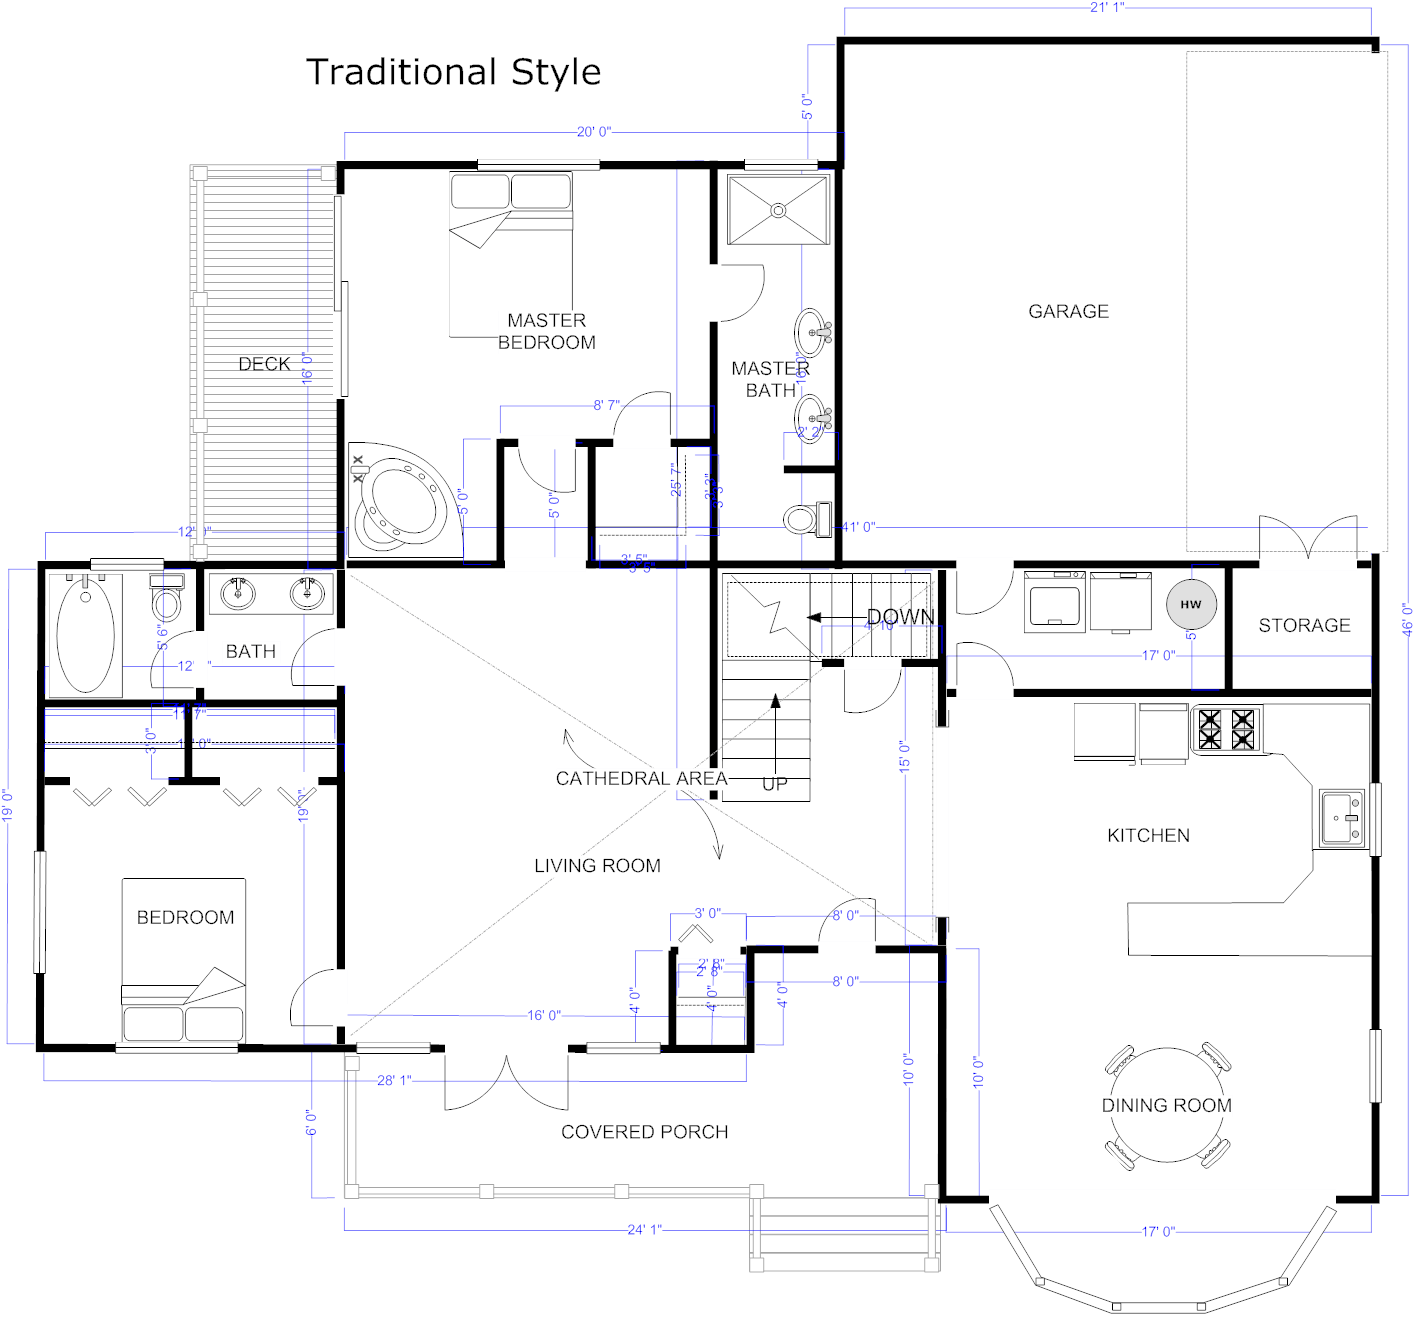 House design yourself - Architecture Software